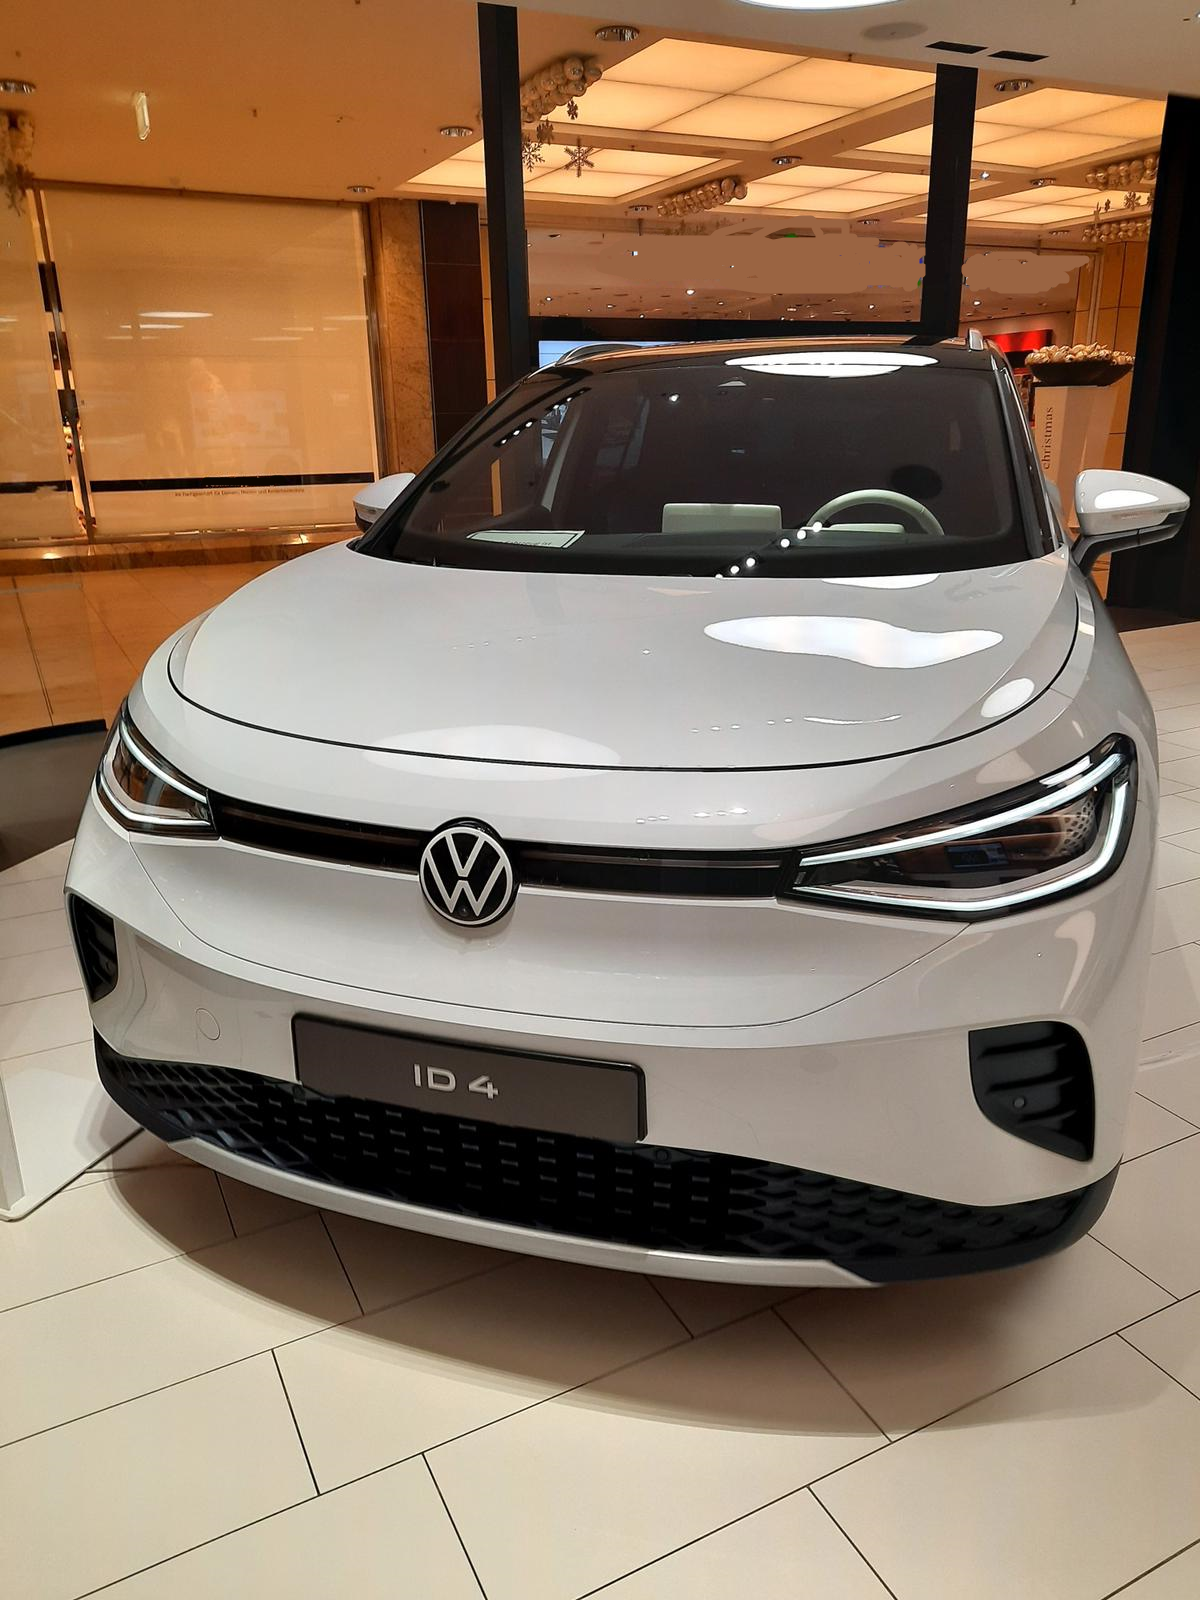 77kWh VW ID.4 1st Pro Performance 150 kW (204 PS) | ludego